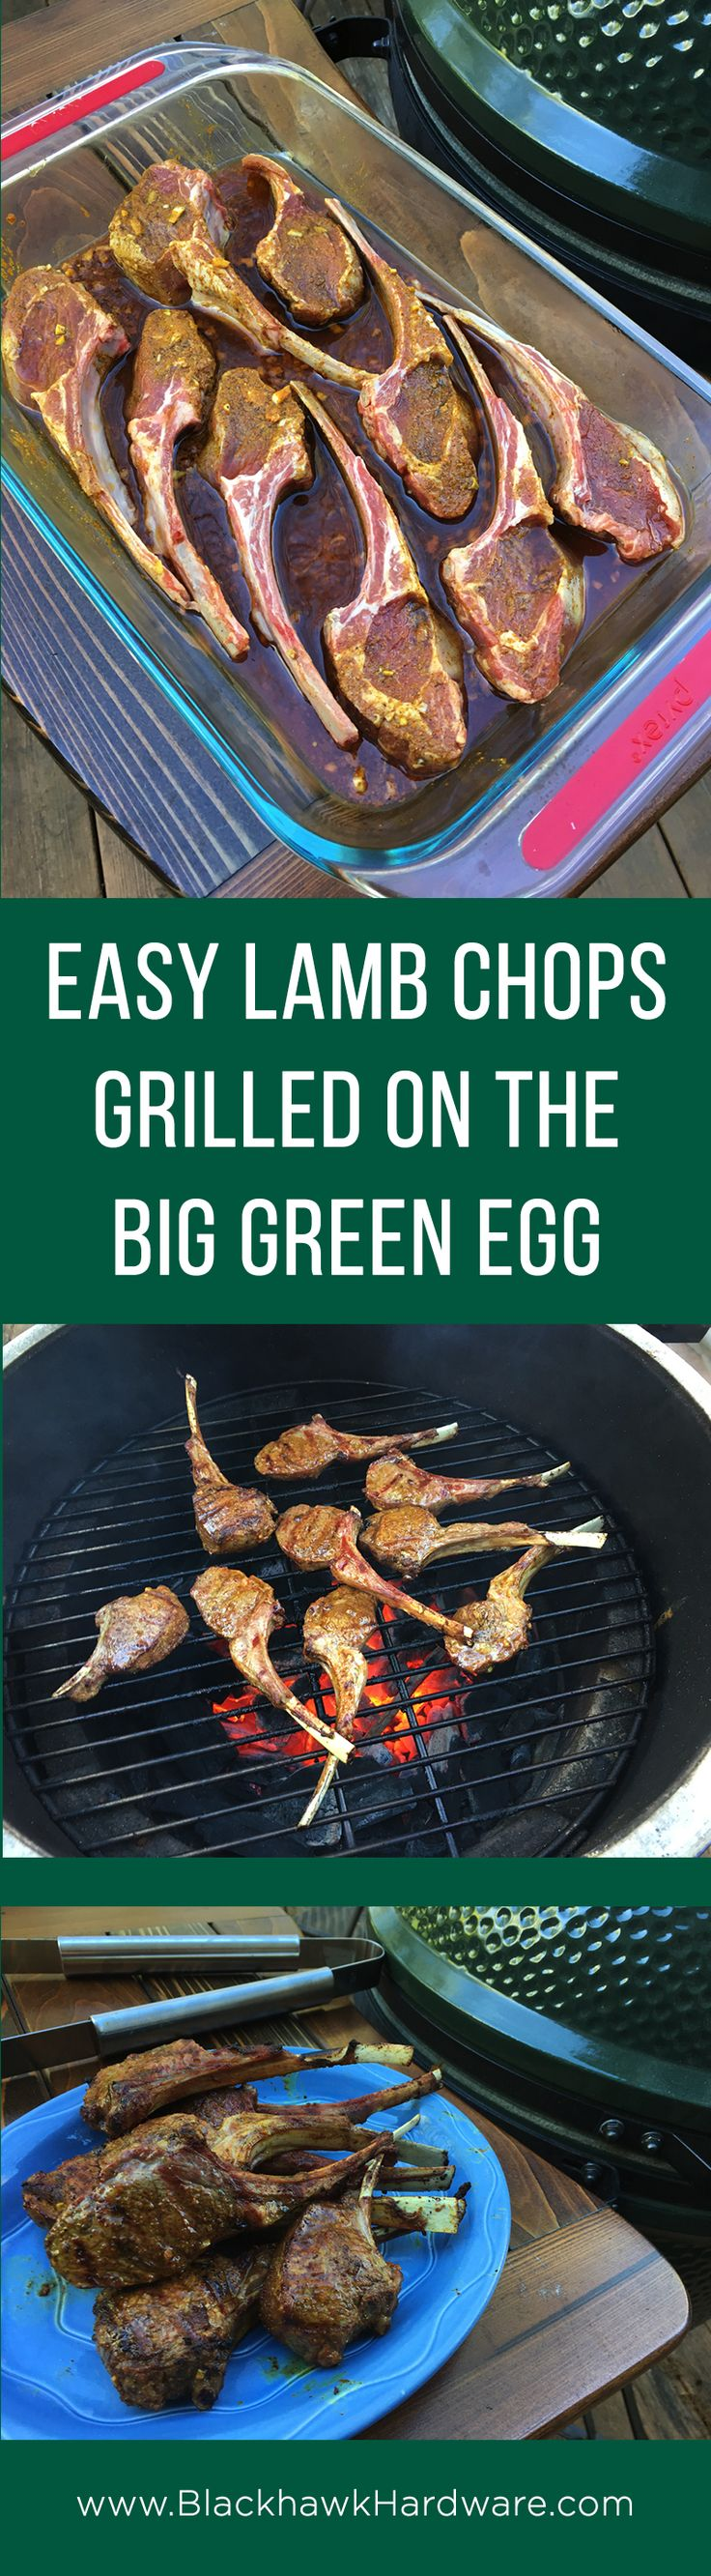 Easy And Delicious Recipe For Grilled Lamb Chops Or Lollipops On The Big  Green Egg #